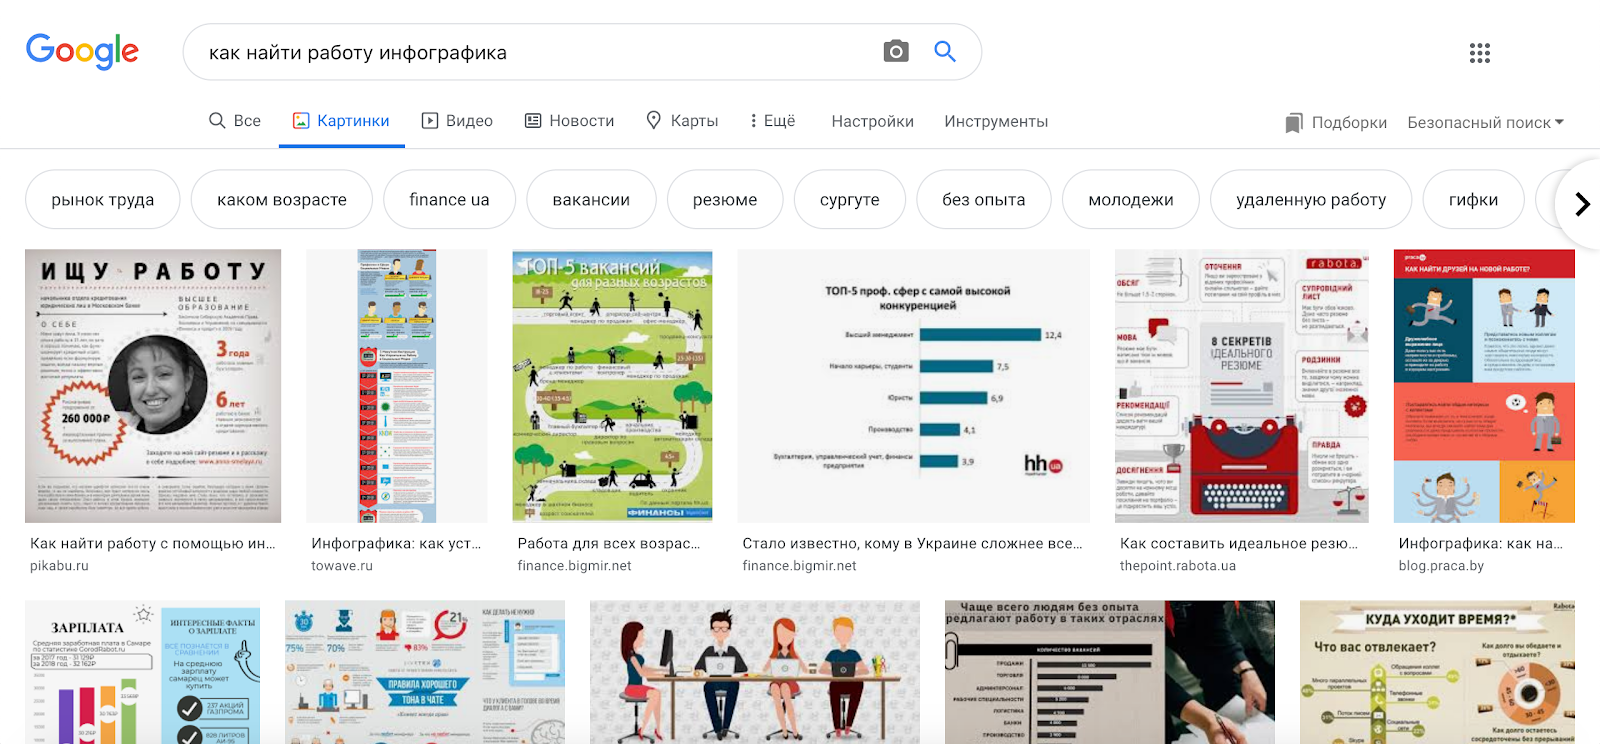 how to get +100 links and reputation using infographics and outreach